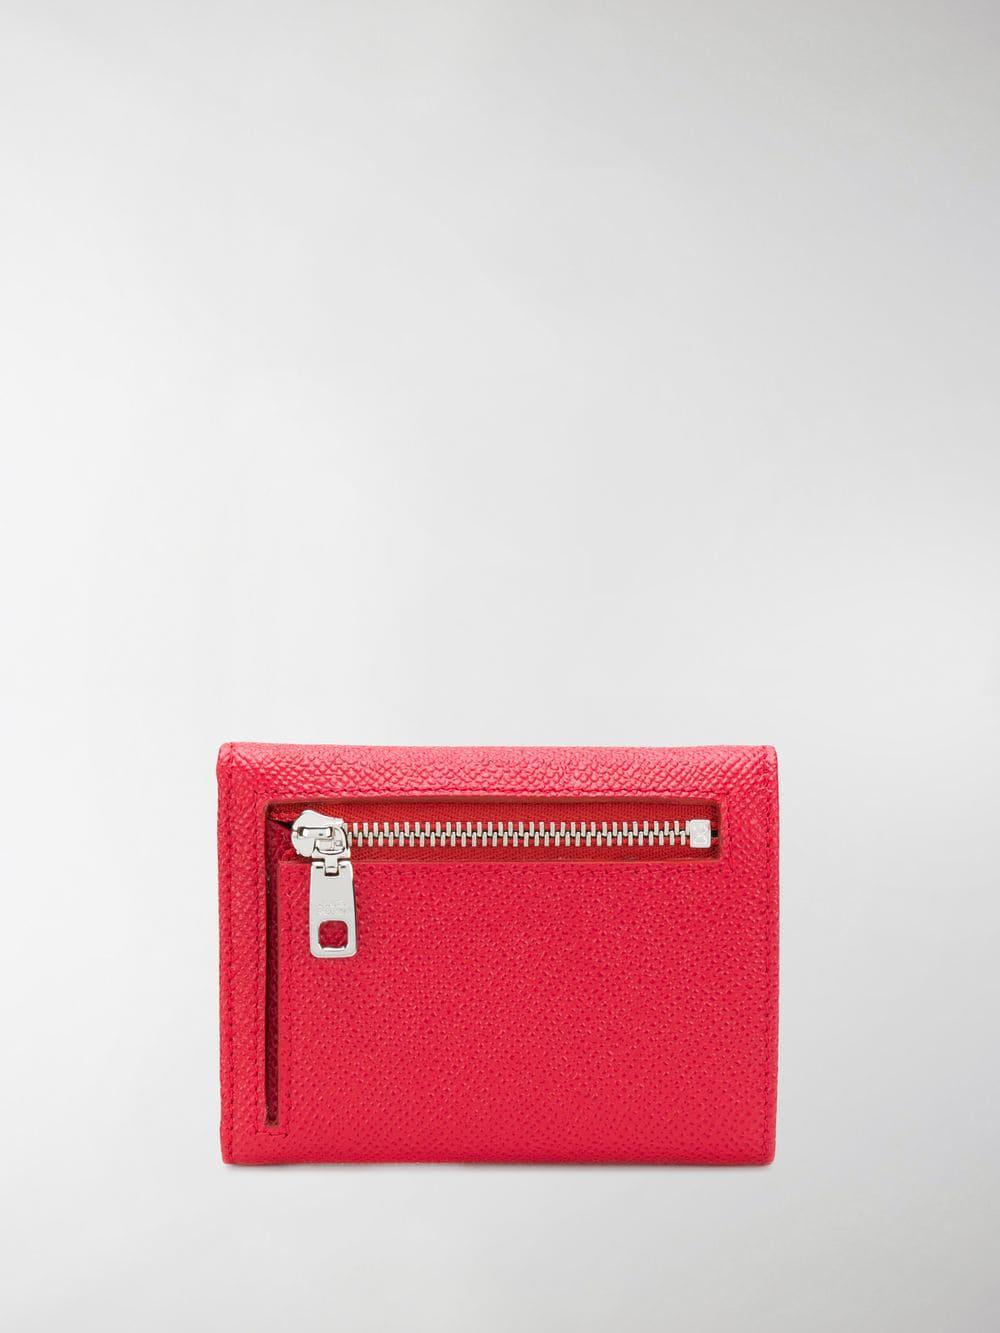 64e0a4cabf3 Dolce   Gabbana Diamante Dg Logo Pebbled Leather Wallet in Red - Lyst